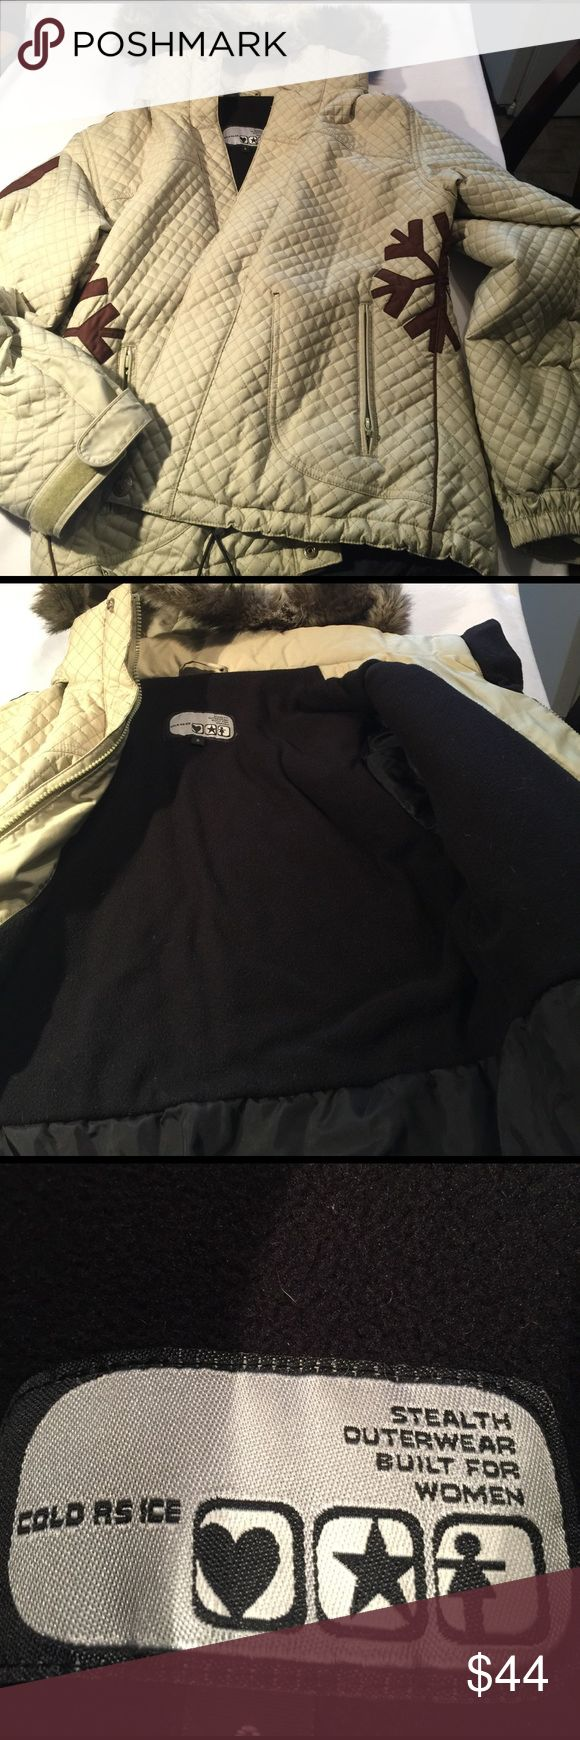 Cold As Ice Brand Women's Ski Snow Jacket Cold As Ice Brand Women's Ski Snow Boarding Jacket One time use excellent condition, firm on price Cold As Ice Jackets & Coats Utility Jackets